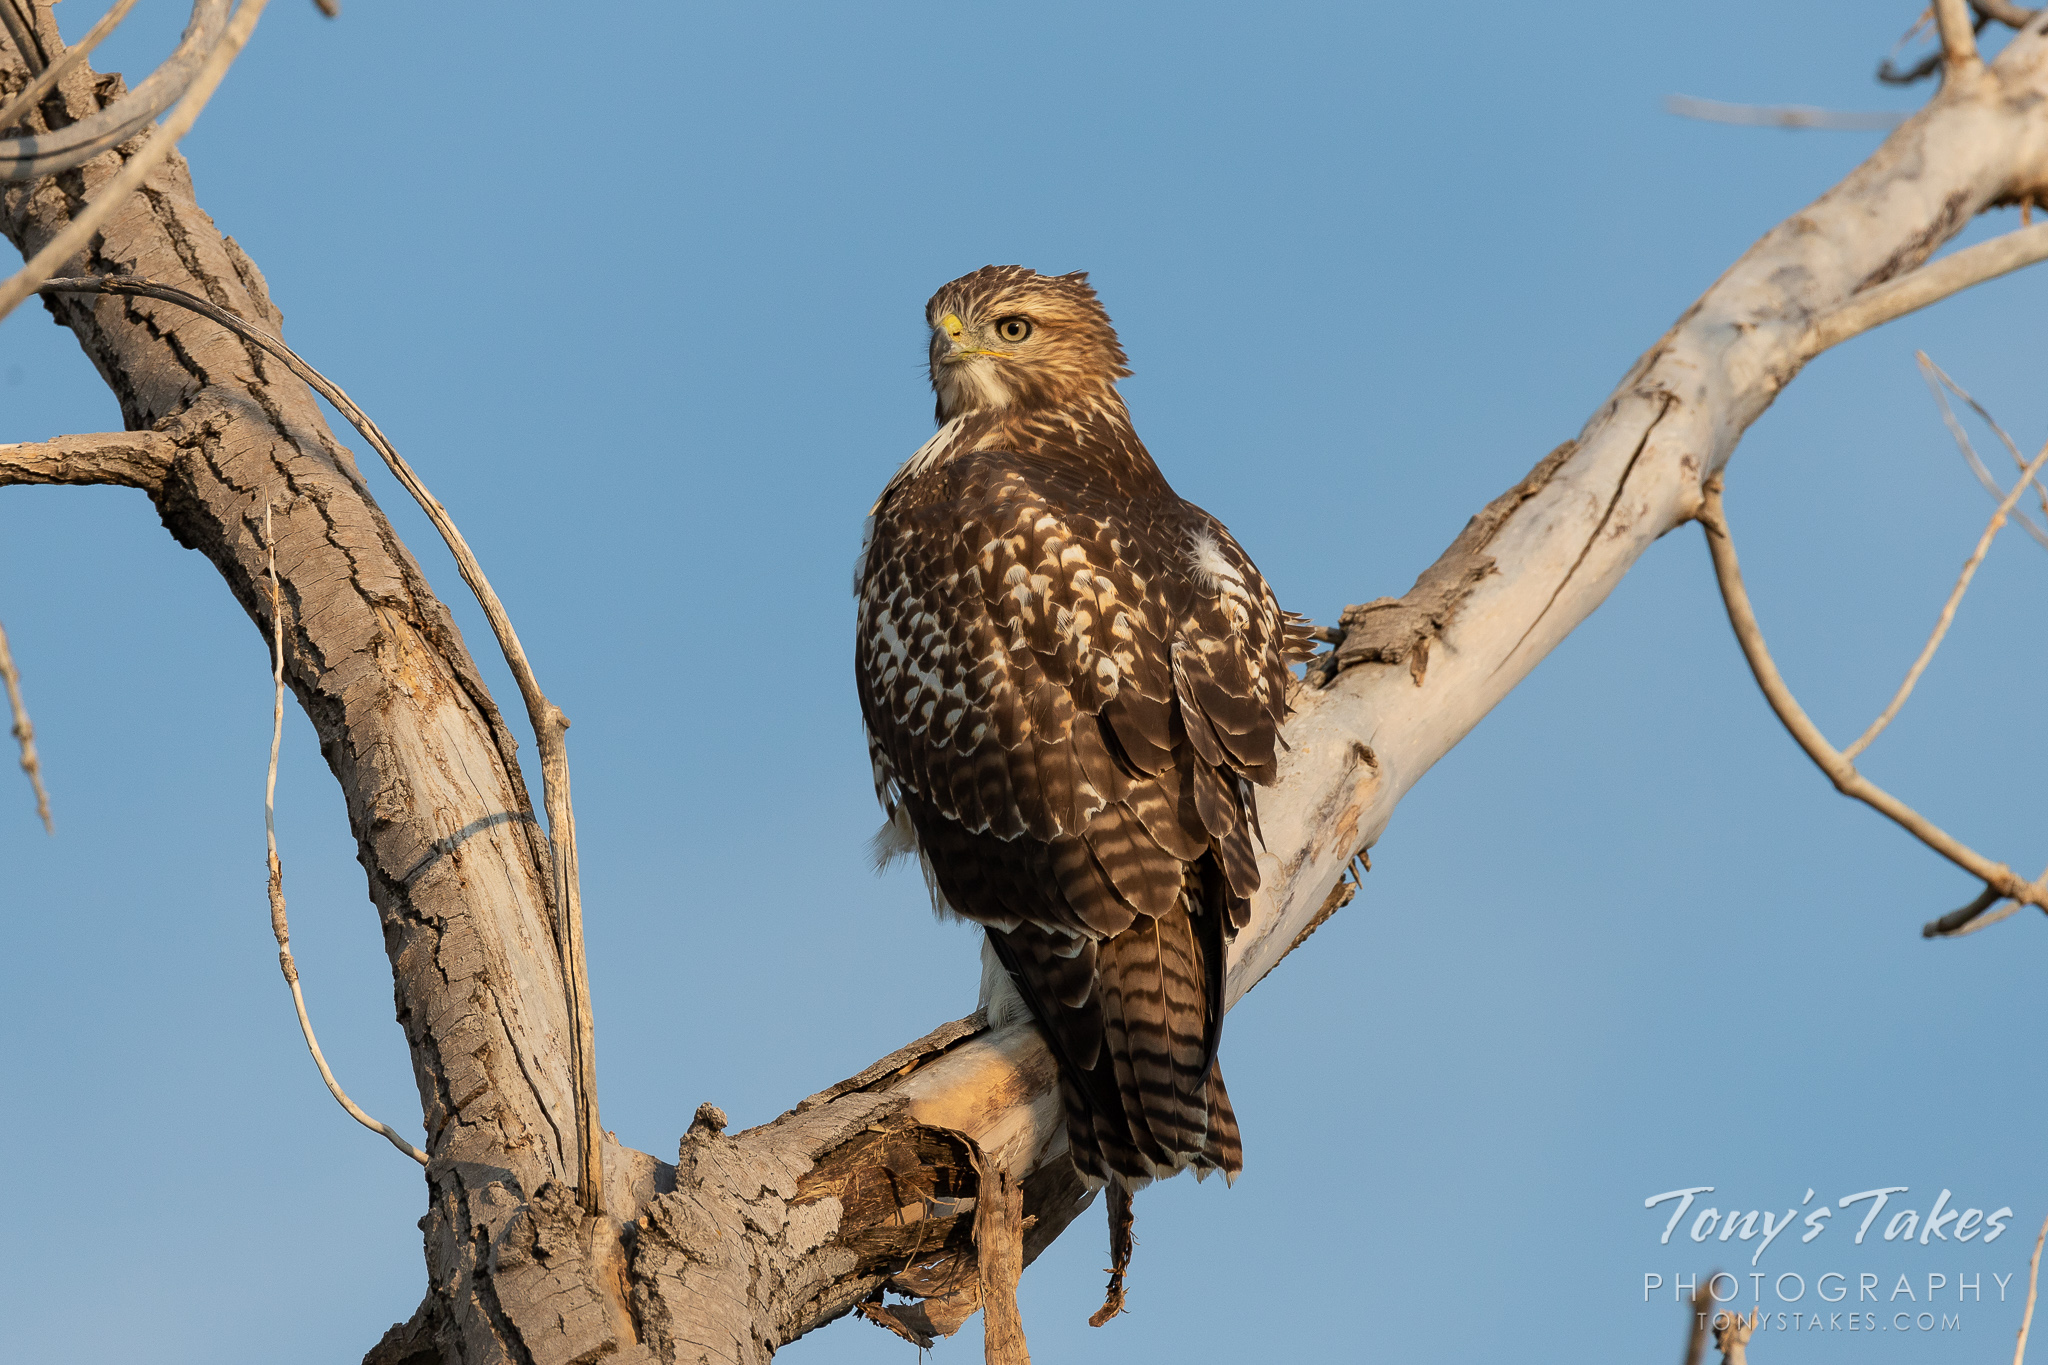 A juvenile Red-tailed Hawk keeps watch near Union Reservoir in Longmont, Colorado.   (© Tony's Takes)